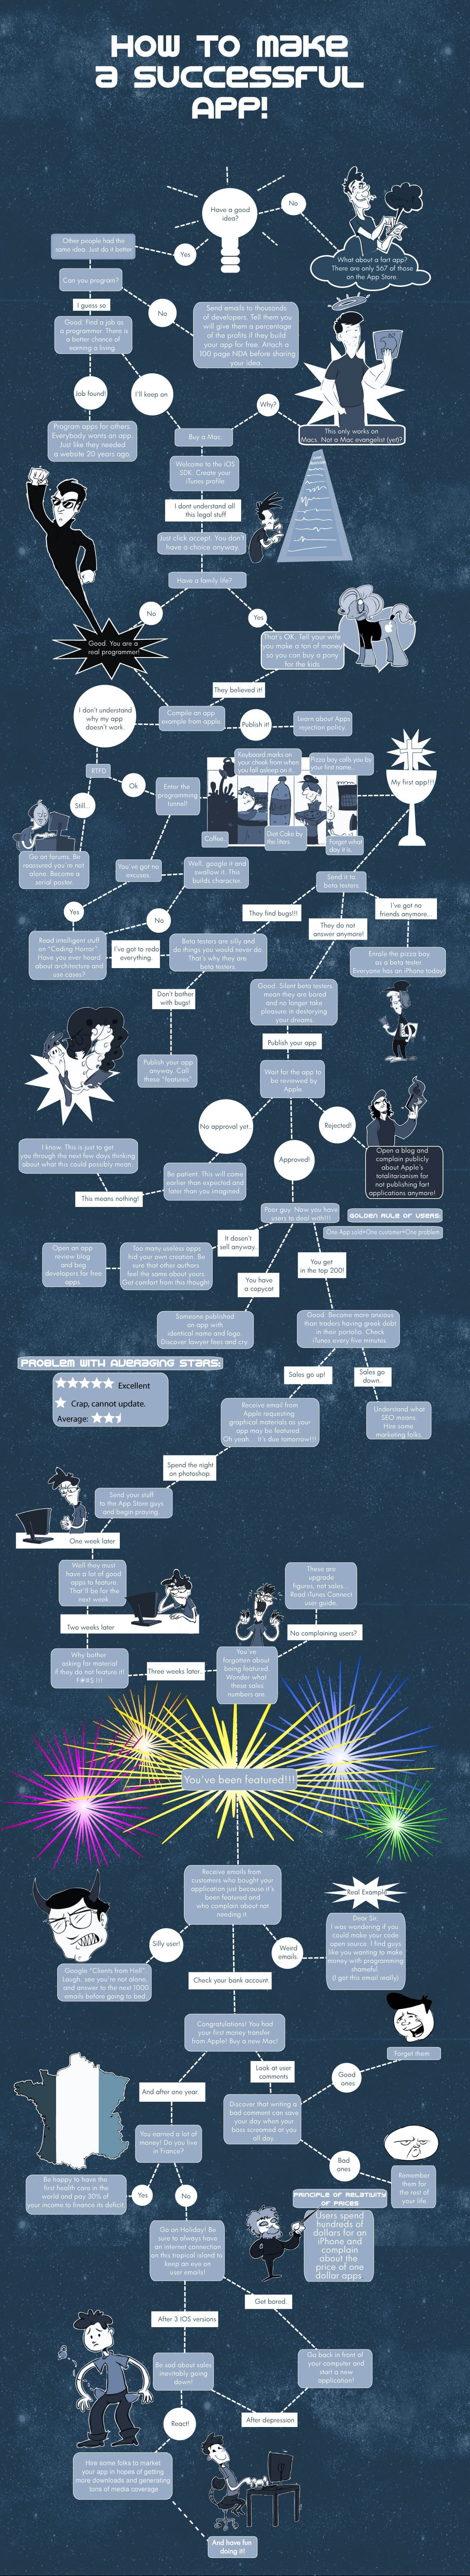 App Creation Flowchart For A Successful App [Infographic]